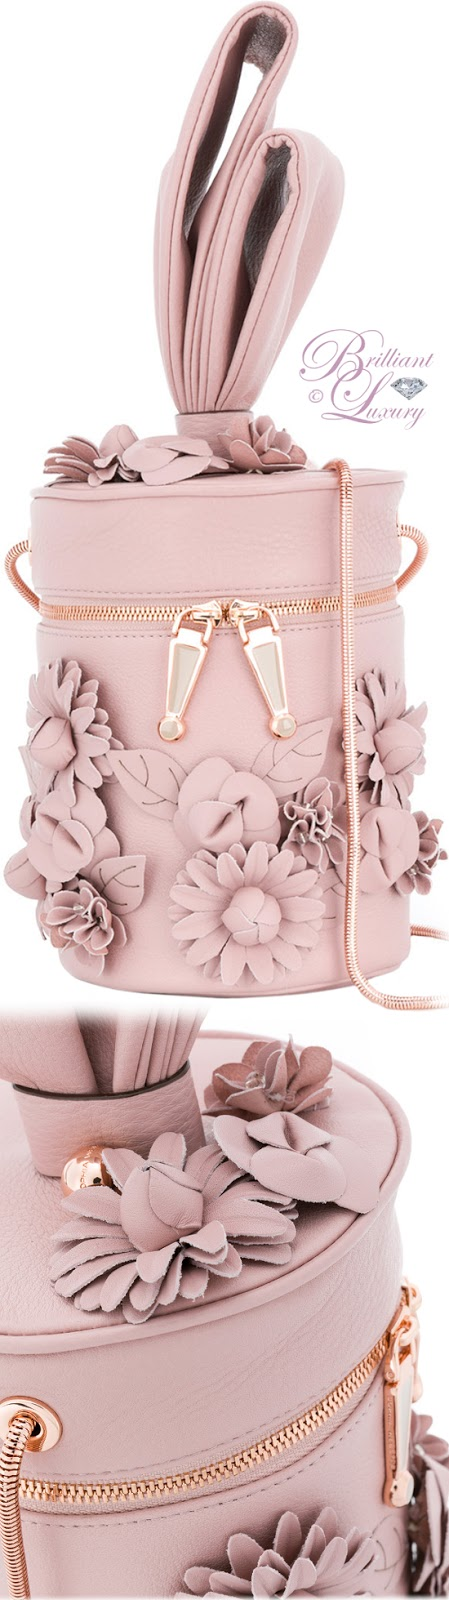 Brilliant Luxury ♦ Sophia Webster Bonnie Liloco crossbody bag